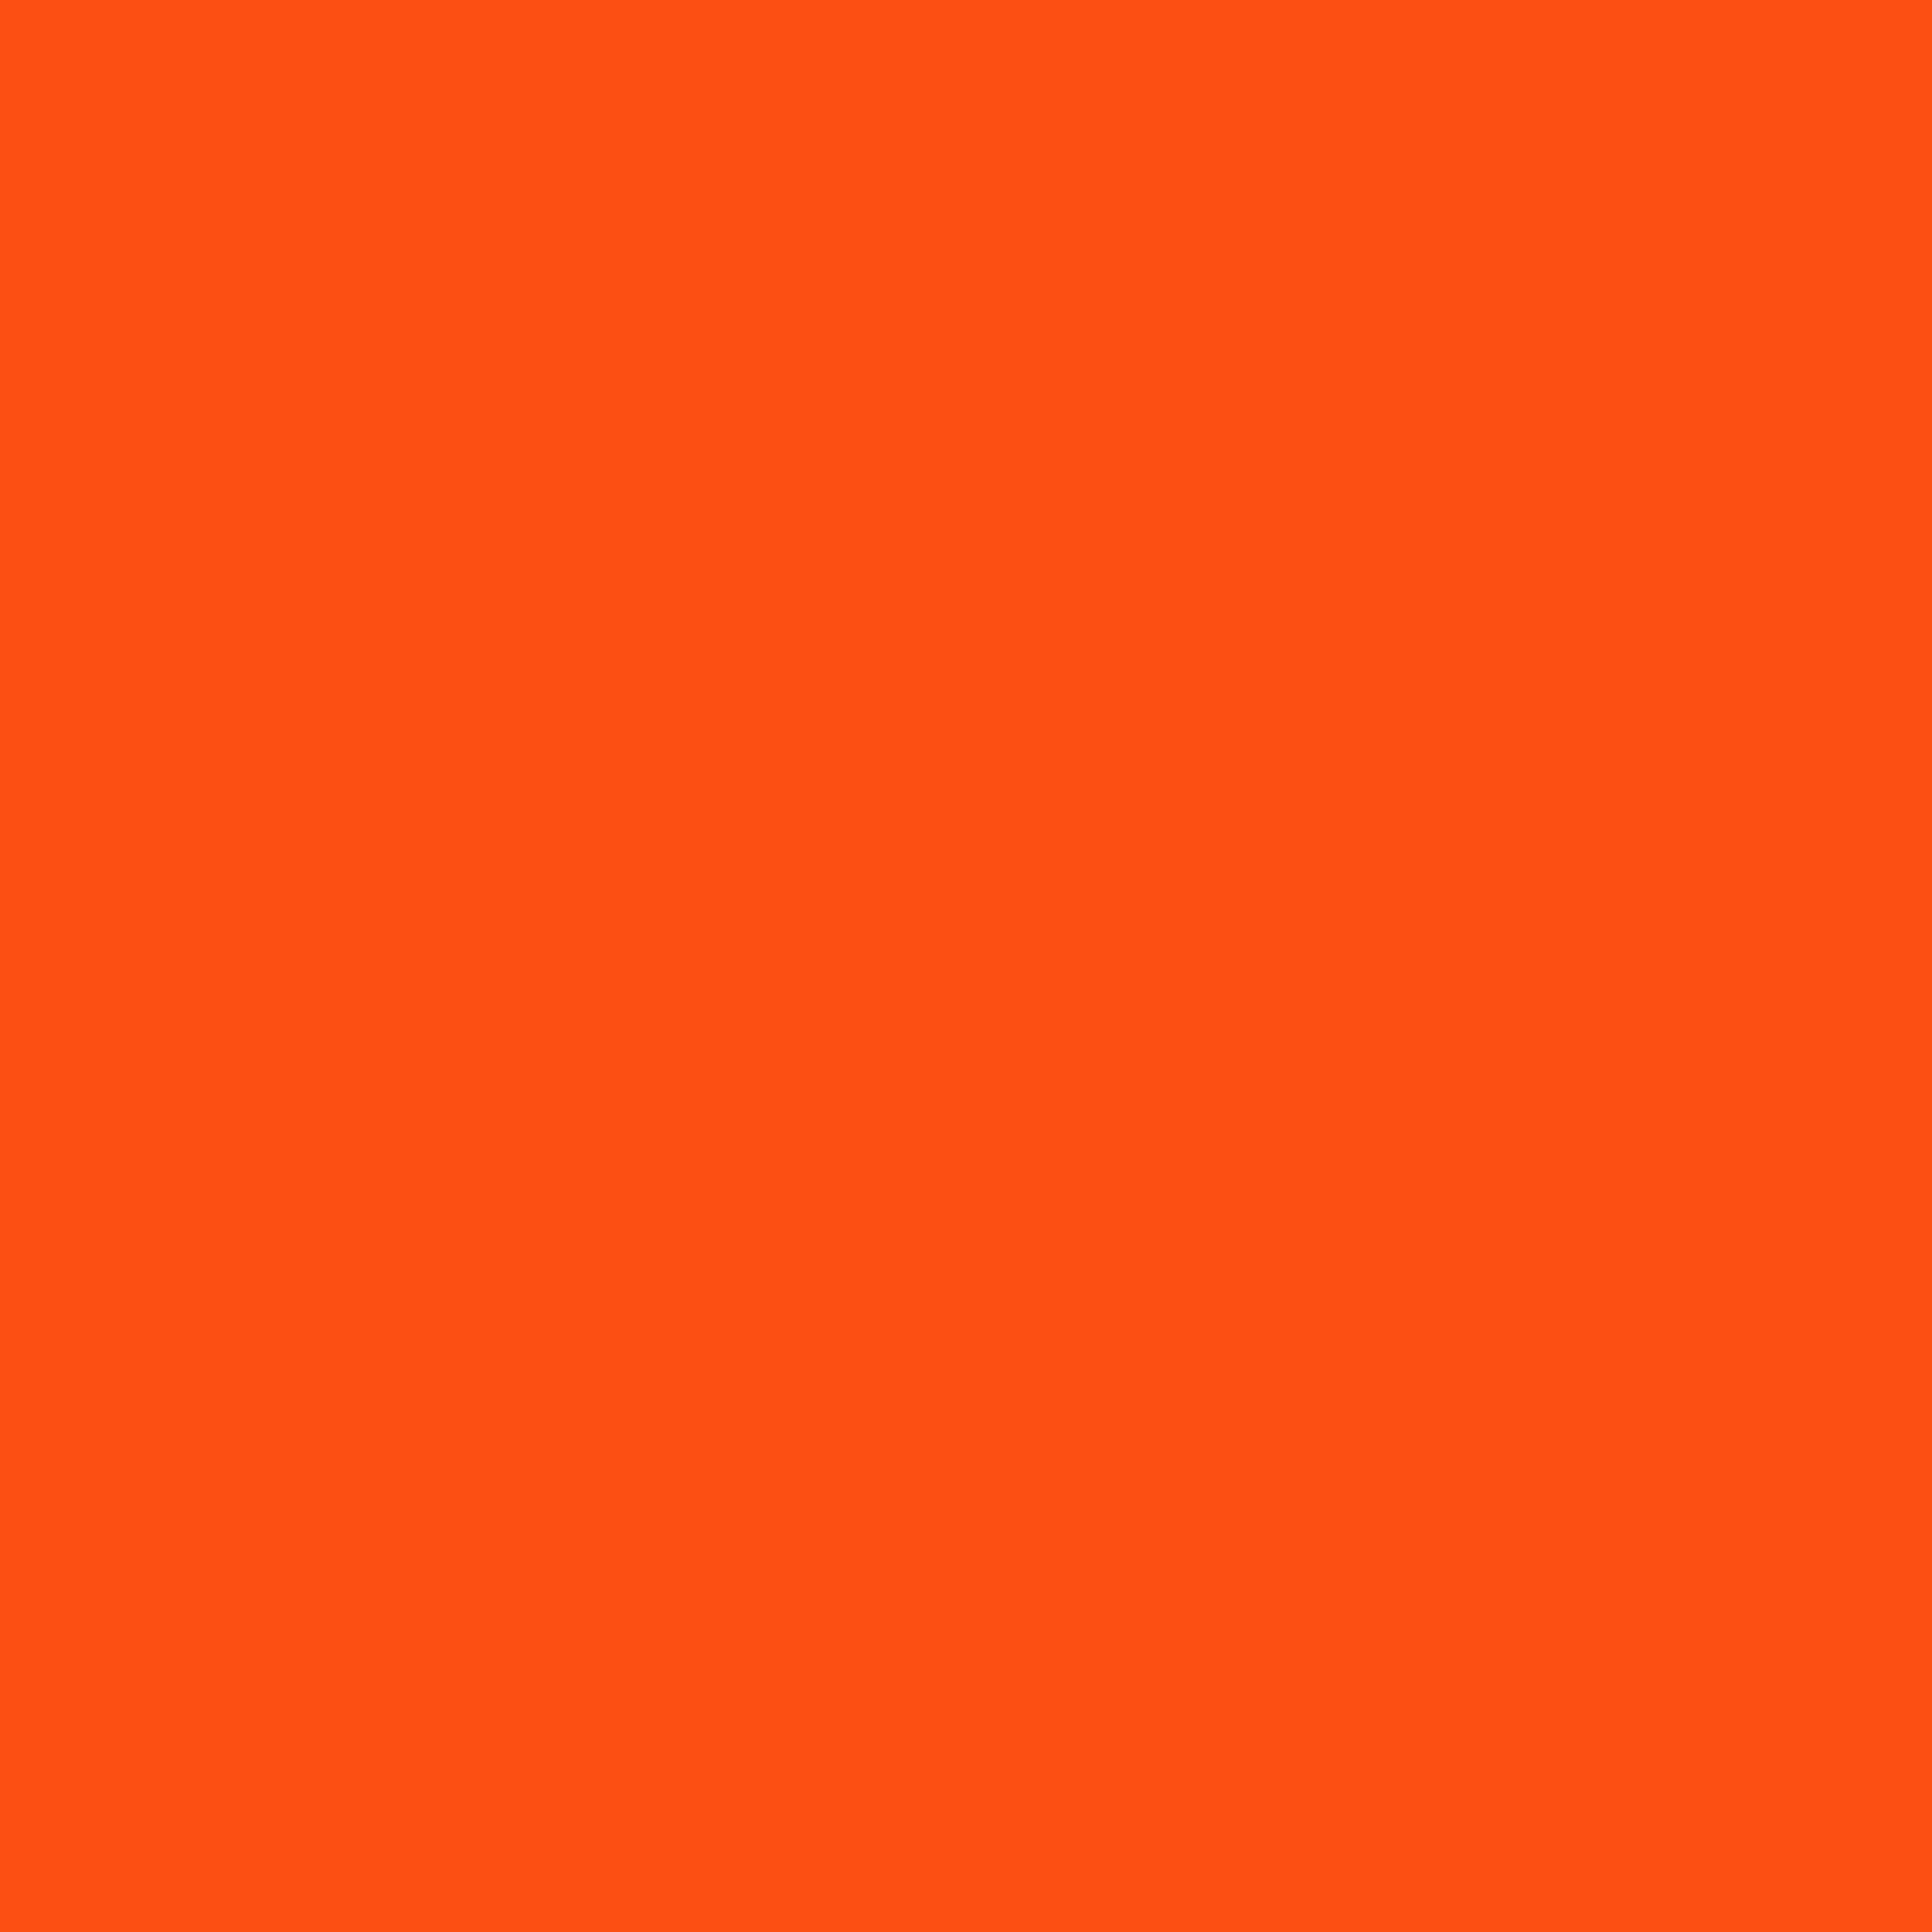 2048x2048 Orioles Orange Solid Color Background